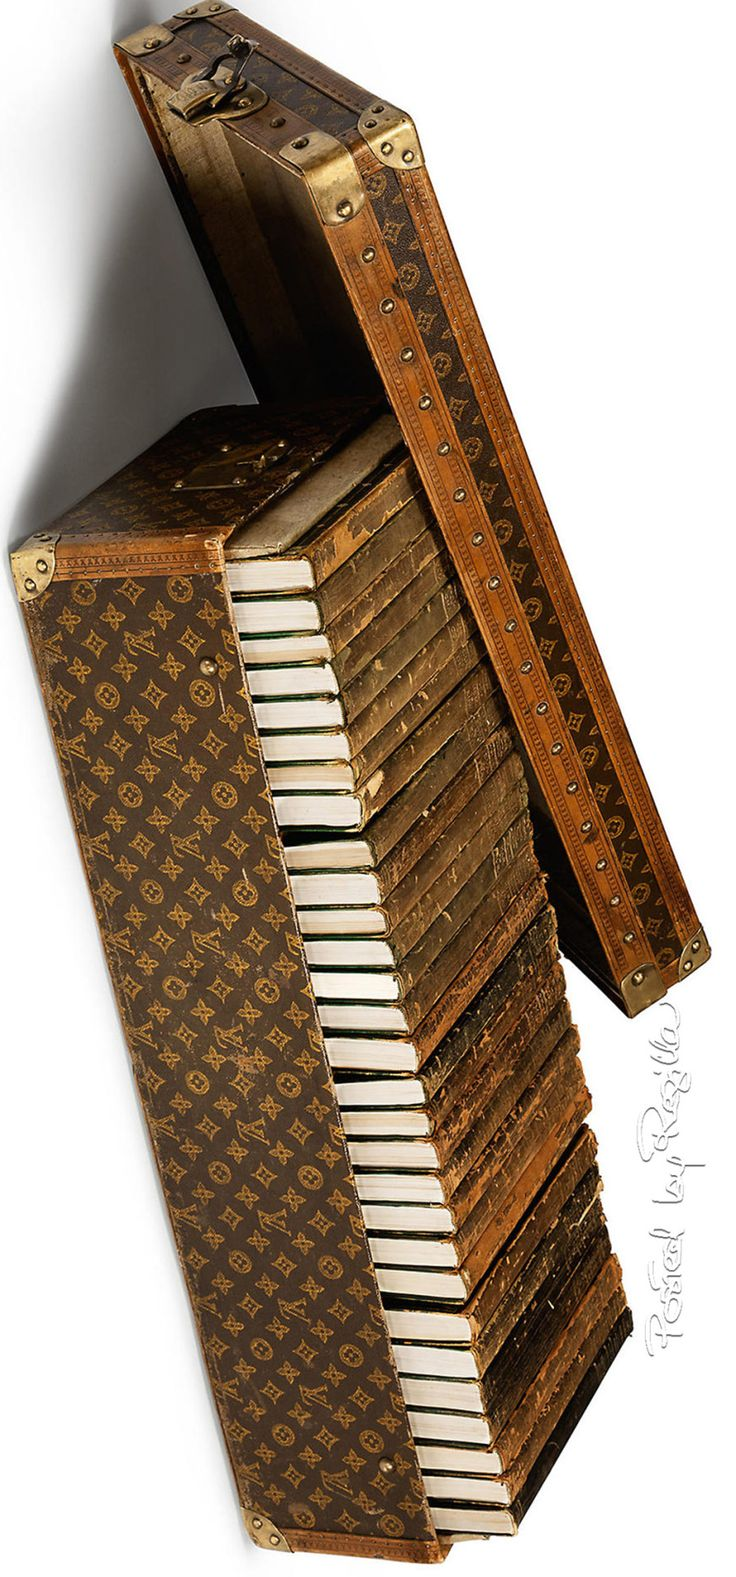 Louis Vuitton Traveling Book Trunk | House of Beccaria#